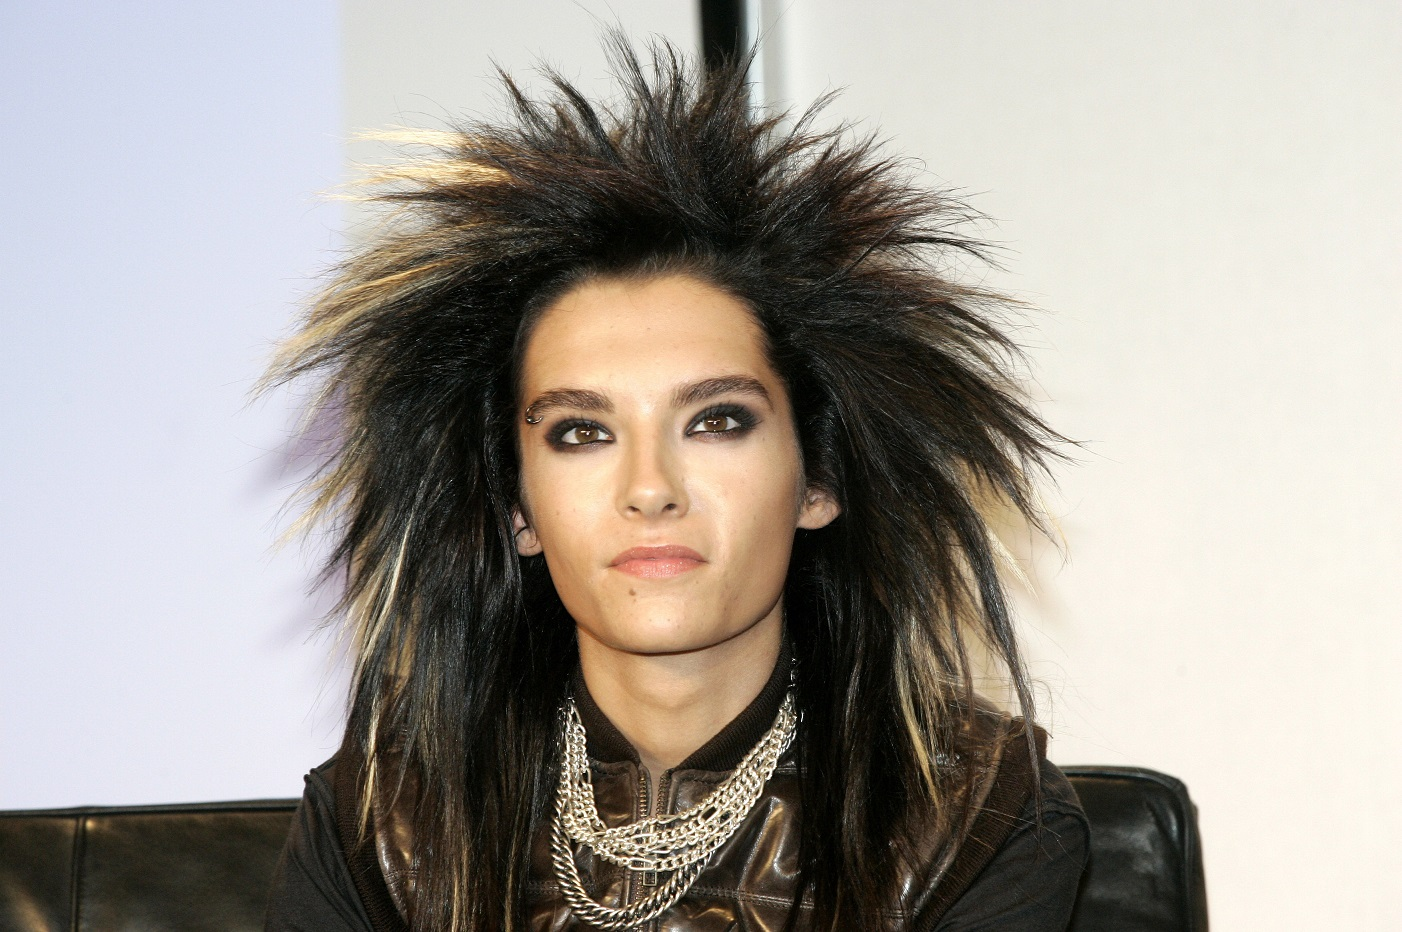 Bill Kaulitz photo #730661